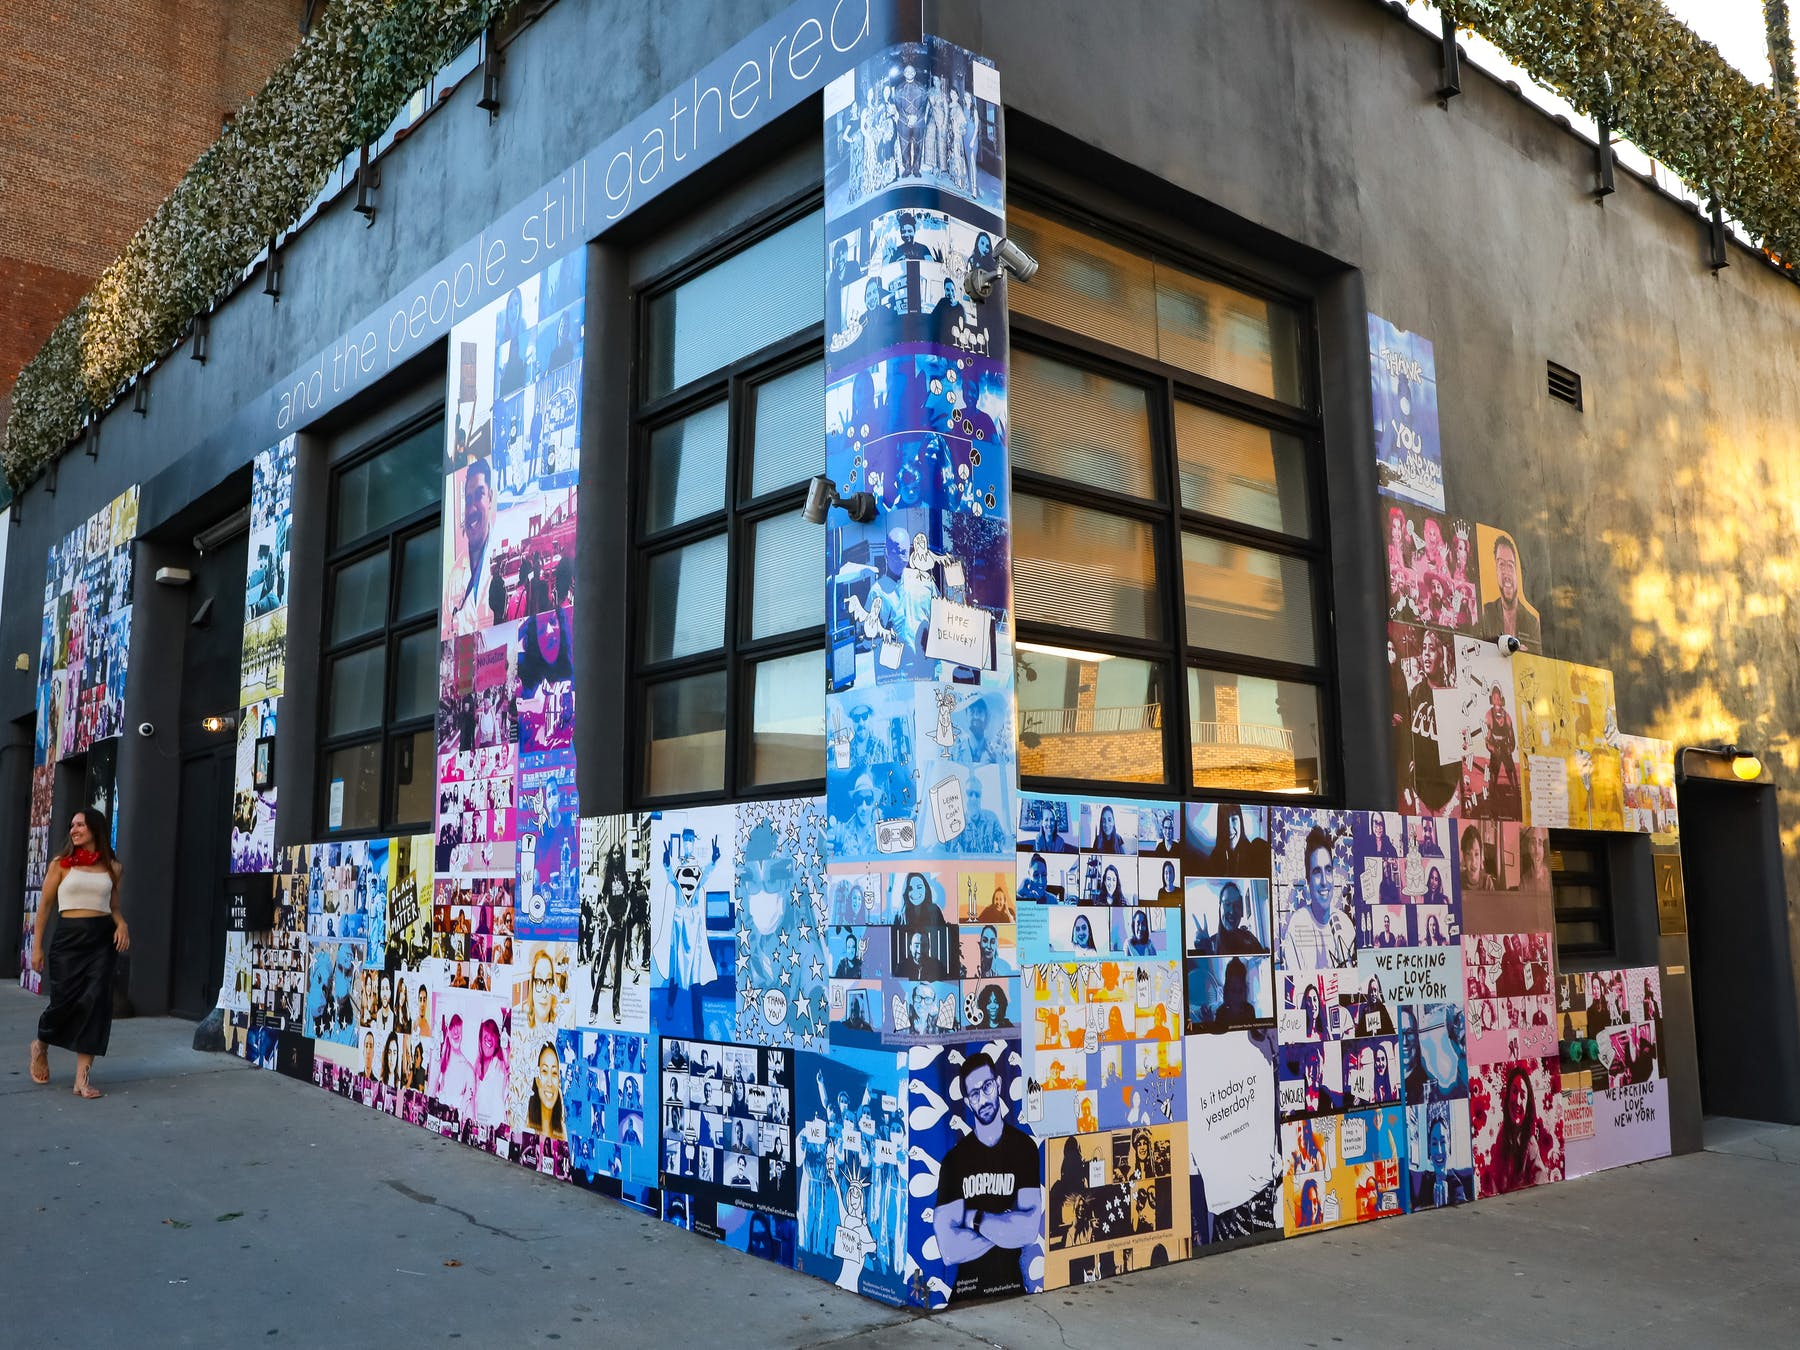 a store front with graffiti on the side of a building